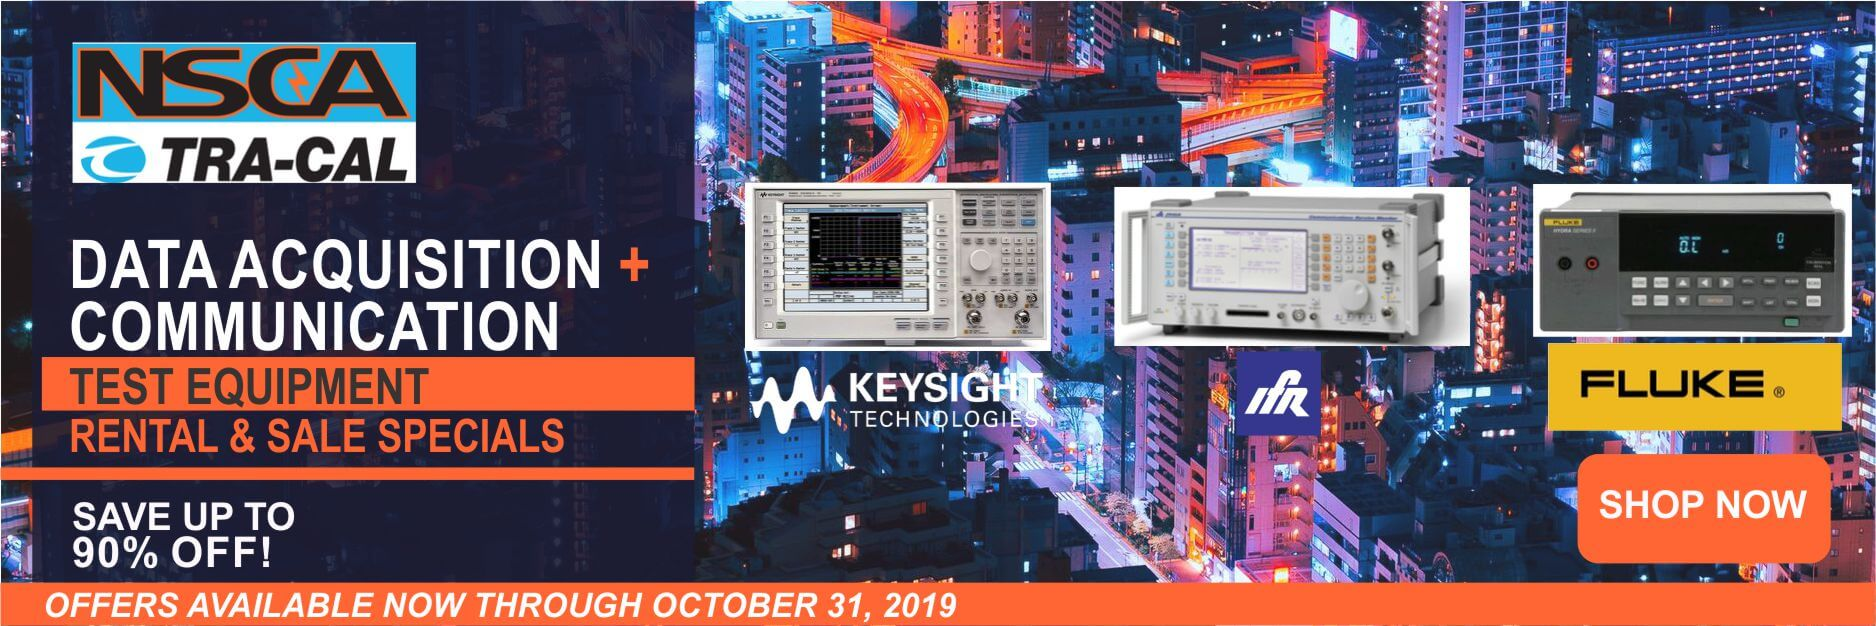 Data Acquisition and Communication Sale - Save up to 90% off!